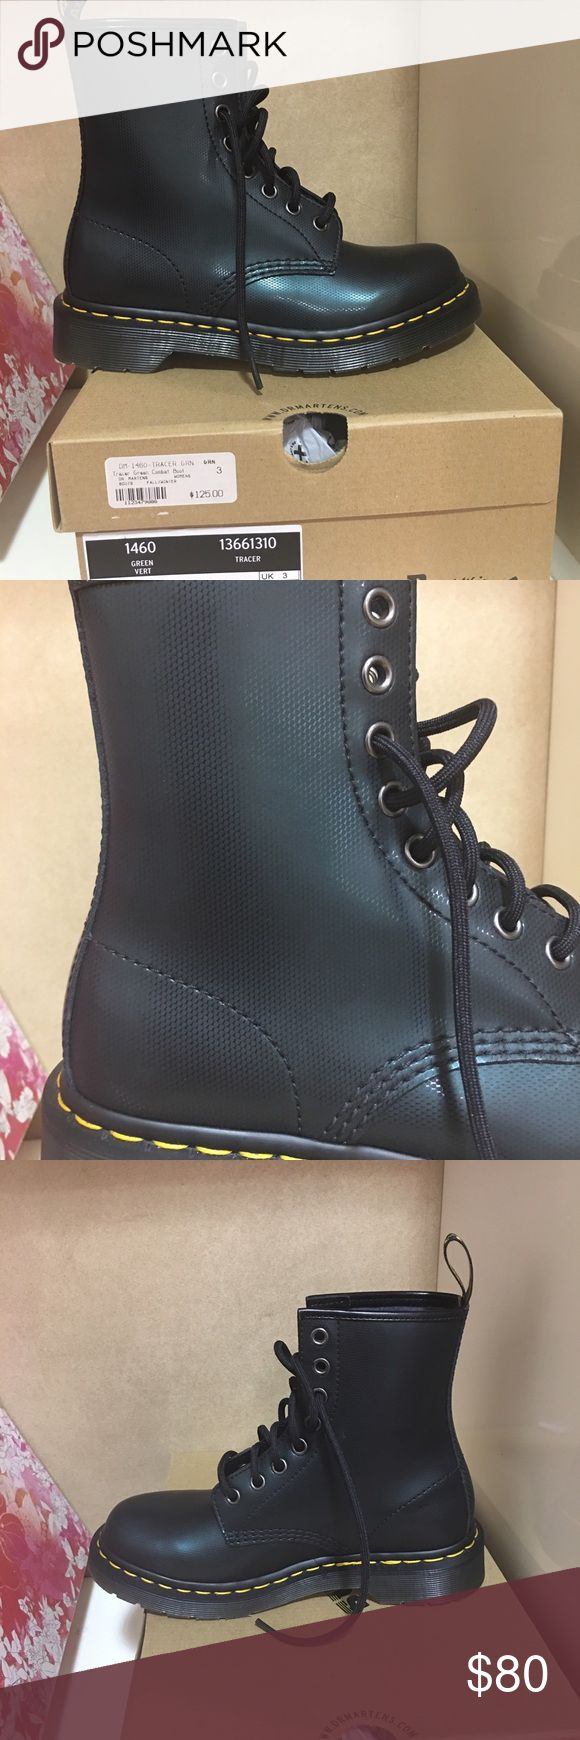 Dr Martens 1460 Tracer 13661310 Green Vert Leather Dr. Martens 1460 Tracer 13661310 Green Vert Leather Boots Medium (B, M) Women Dr. Martens 1460 Tracer 13661310 Green Vert Leather Upper Heel Loop 8 Eyelet Closure Goodyear Welted Product Air Cushion Sole Width: Medium Dr. Martins Shoes Combat & Moto Boots